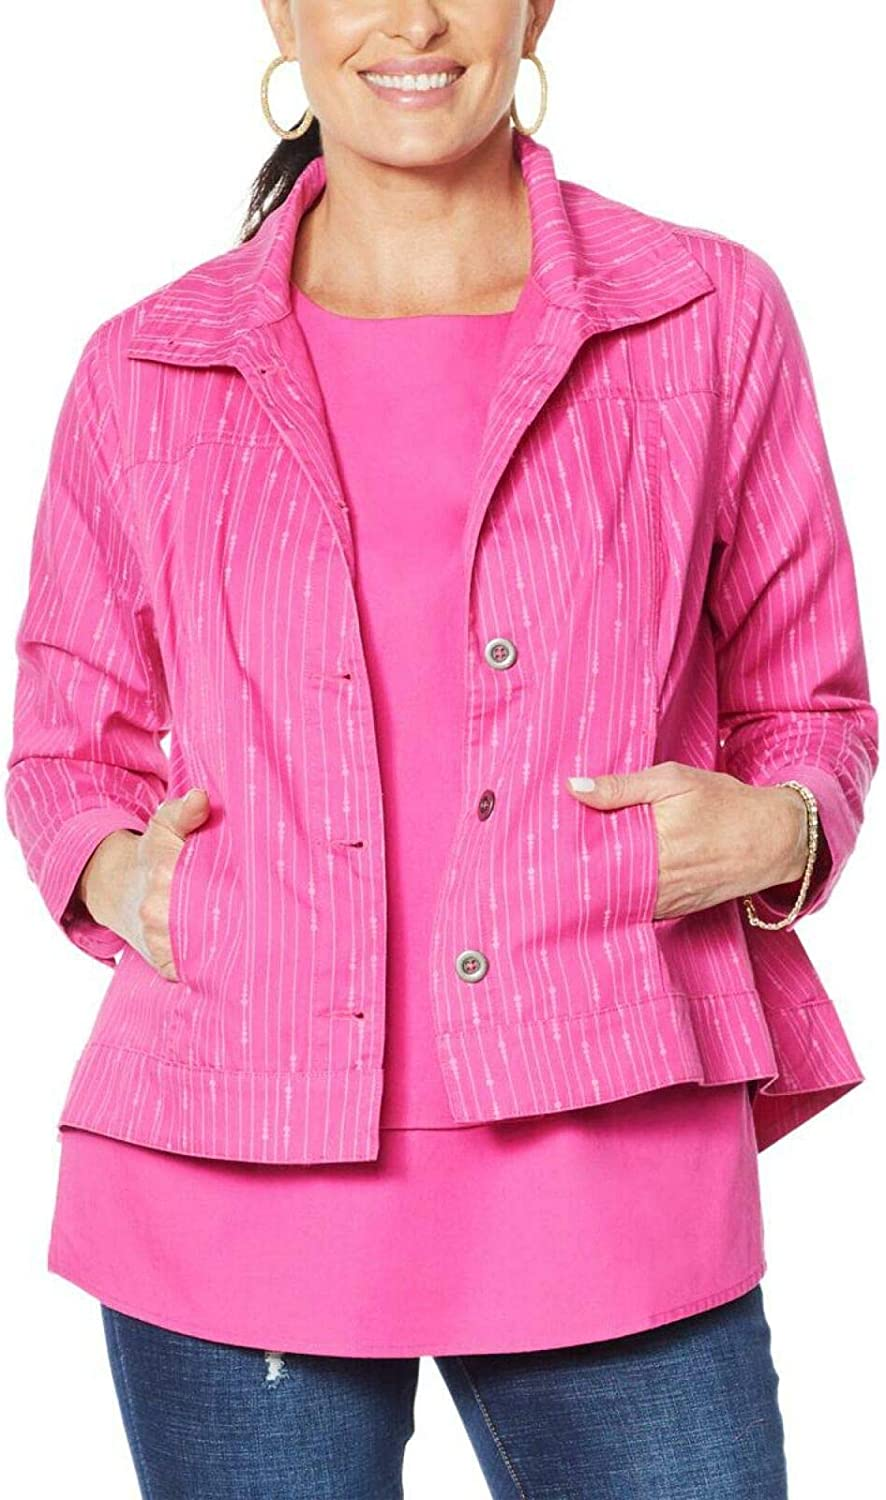 DG2 by Diane Gilman Plus Size SoftCell Lightweight Chambray Jacket. 697419-Plus